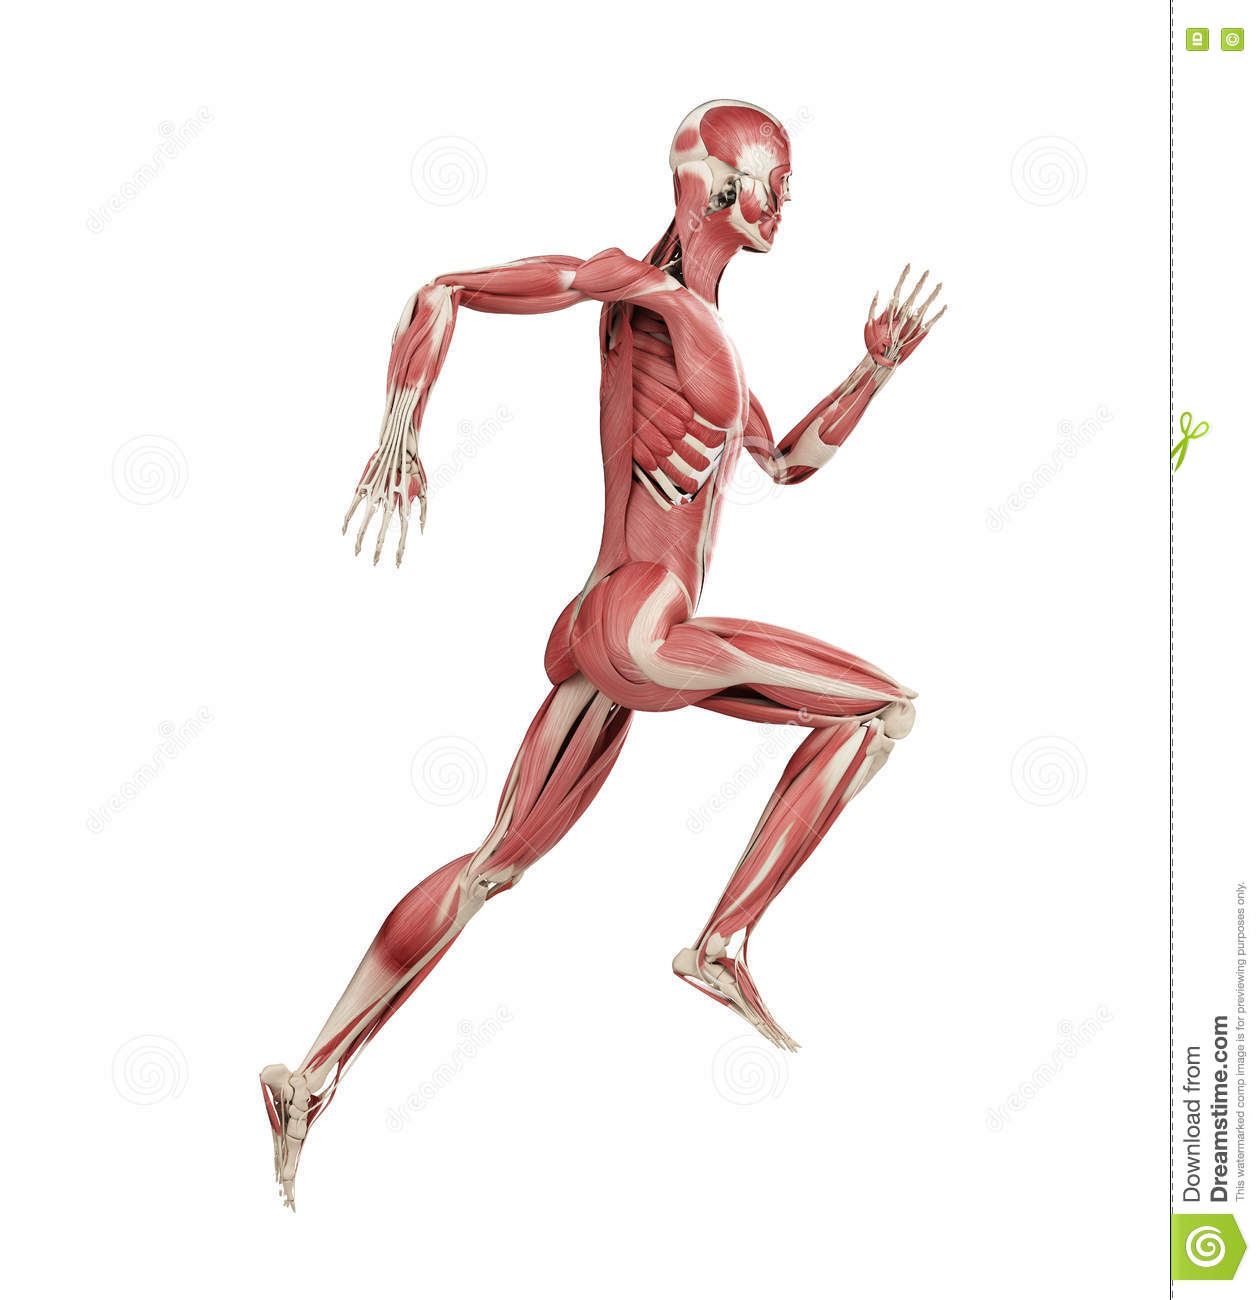 A runners muscles